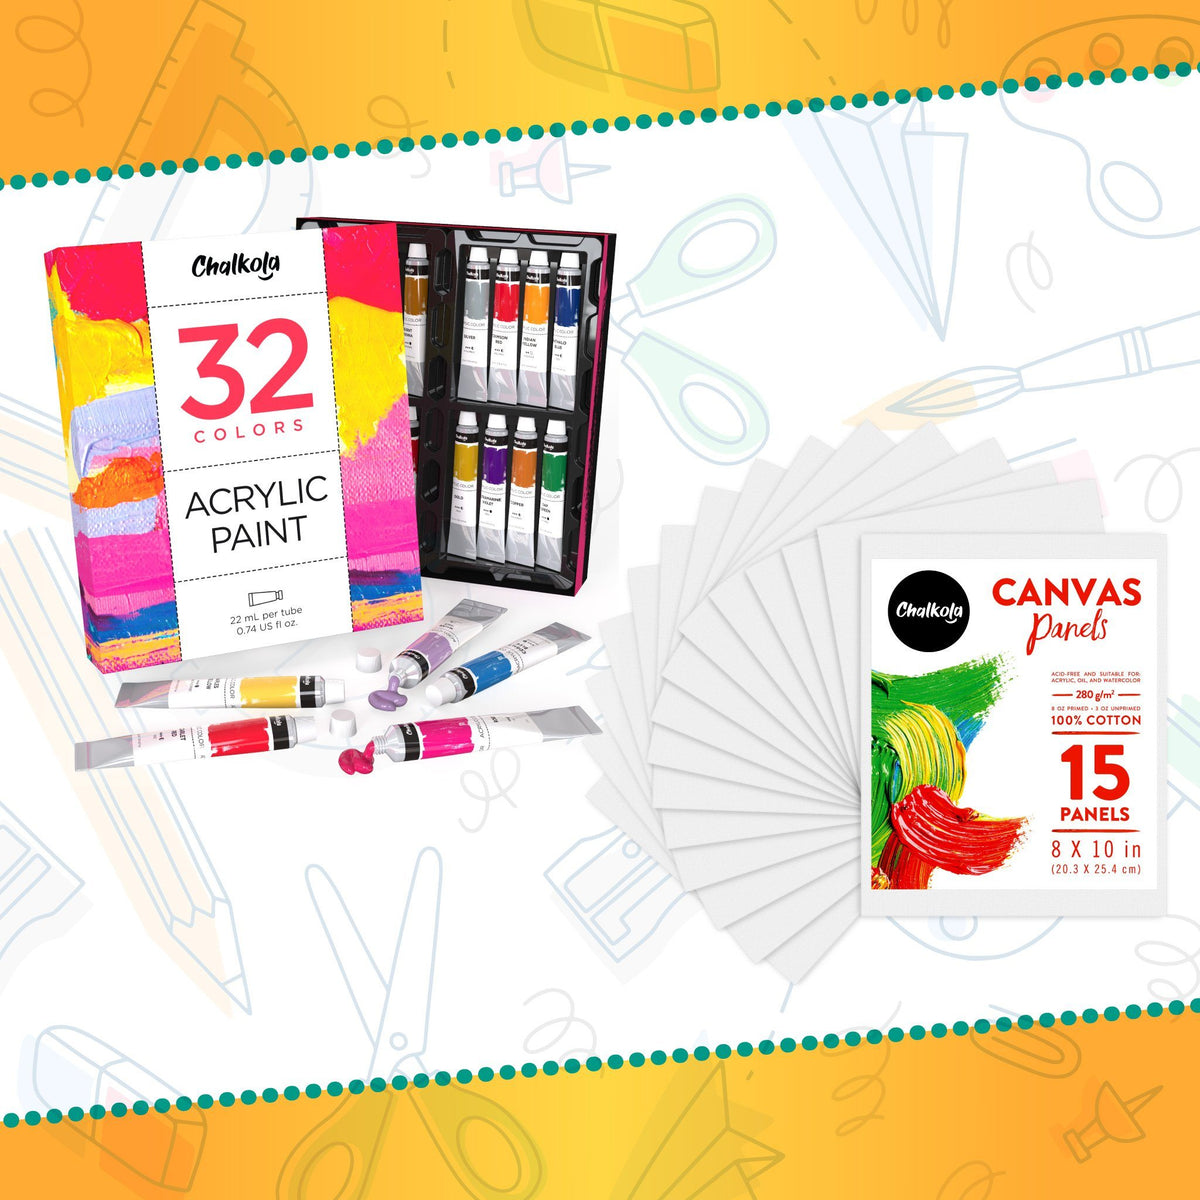 Artists's Bundle: 32 Acrylic Premium Artist Paint + 15 Canvas Panels